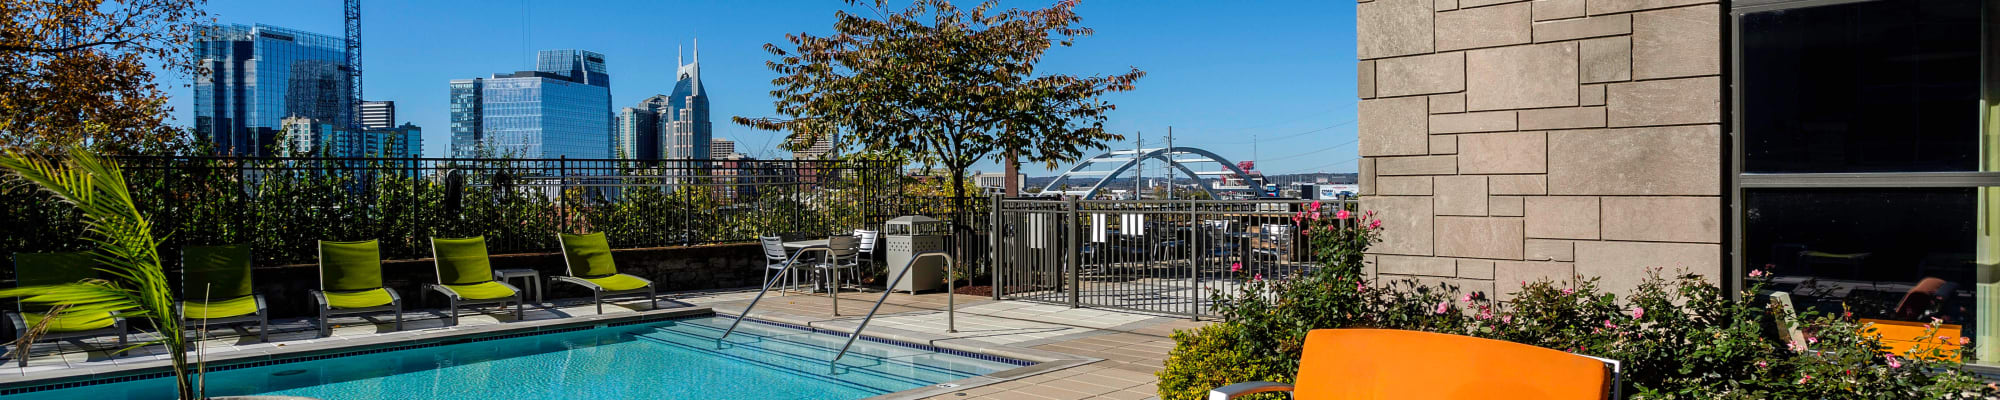 Amenities at City View Apartments in Nashville, TN